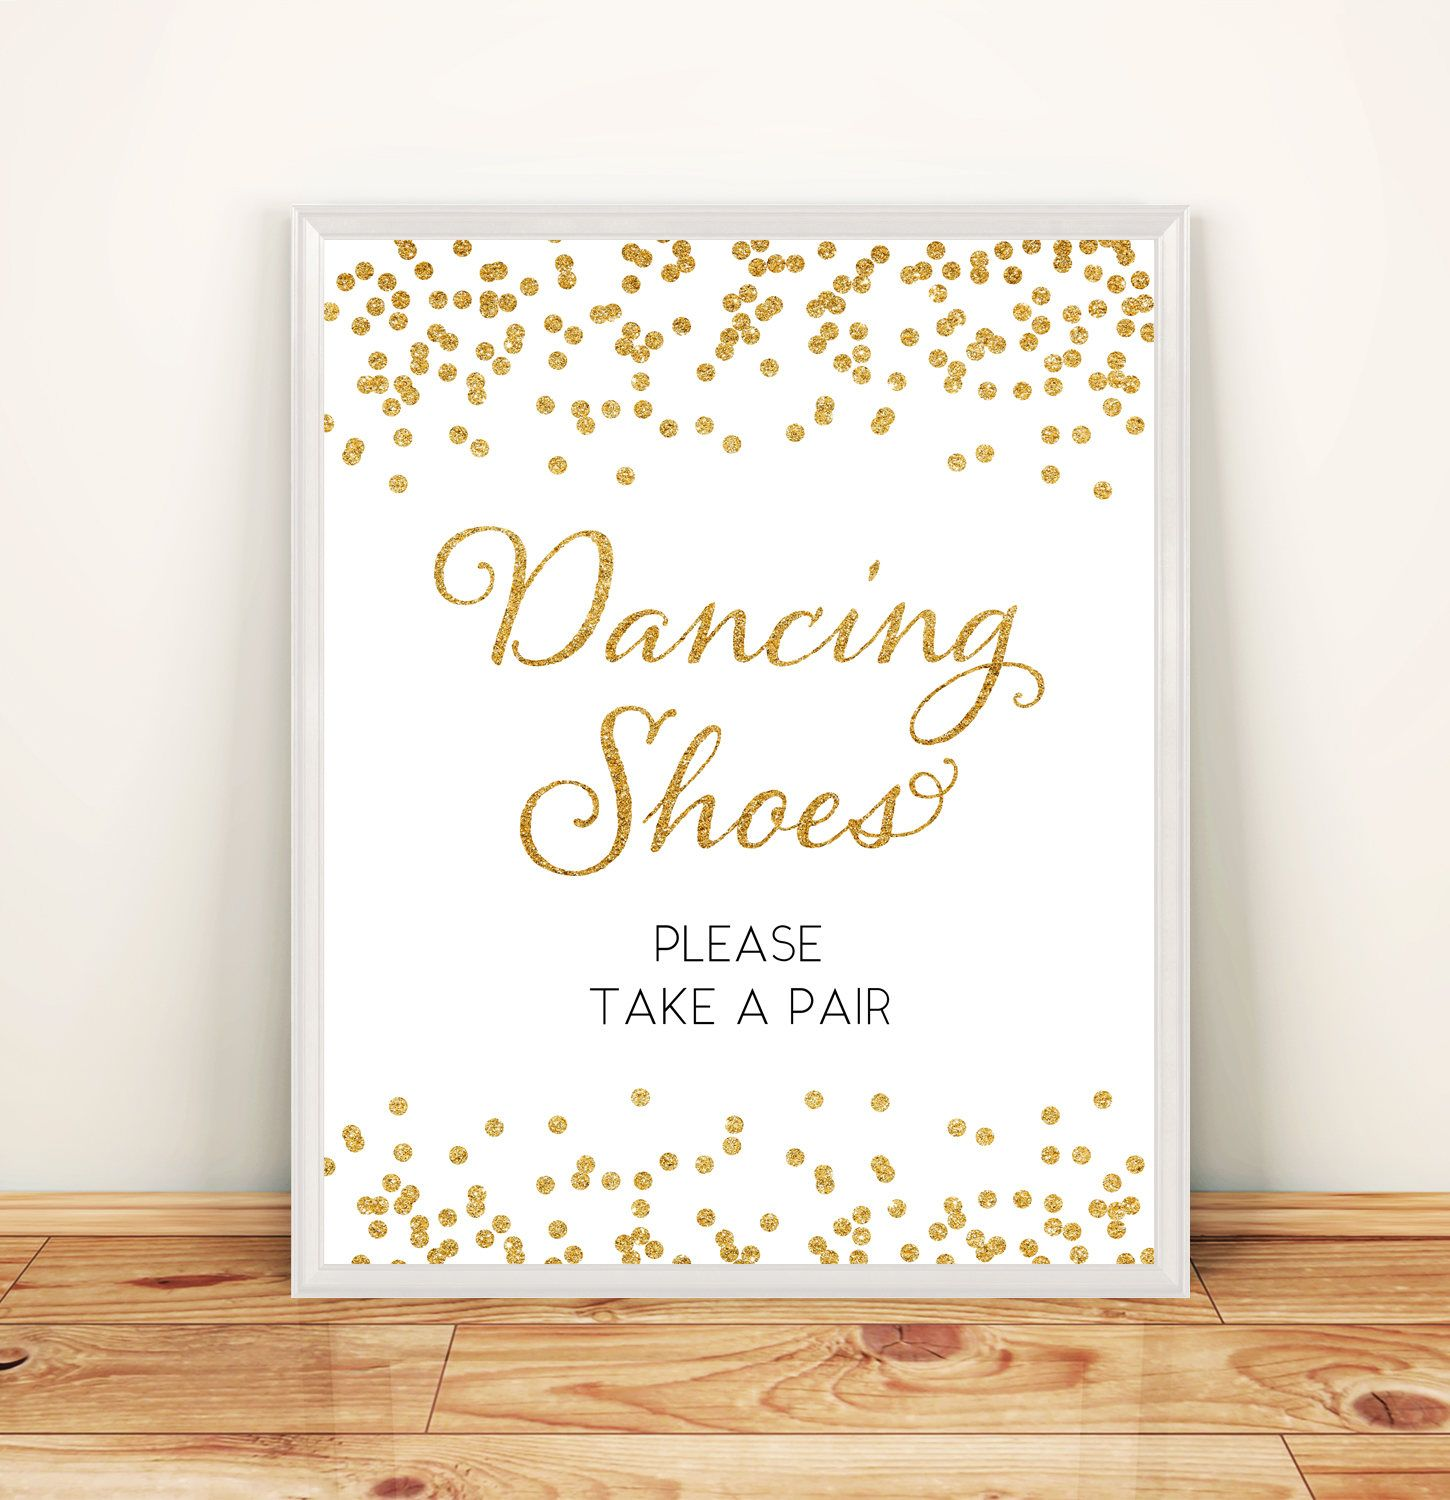 9fc0dd9ebb21 Printable Wedding Dancing shoes Please take a pair sign 8x10 Gold Glitter  dancing shoes sign DIY Wedding Digital Instant Download HQ by  DreamPrintable on ...